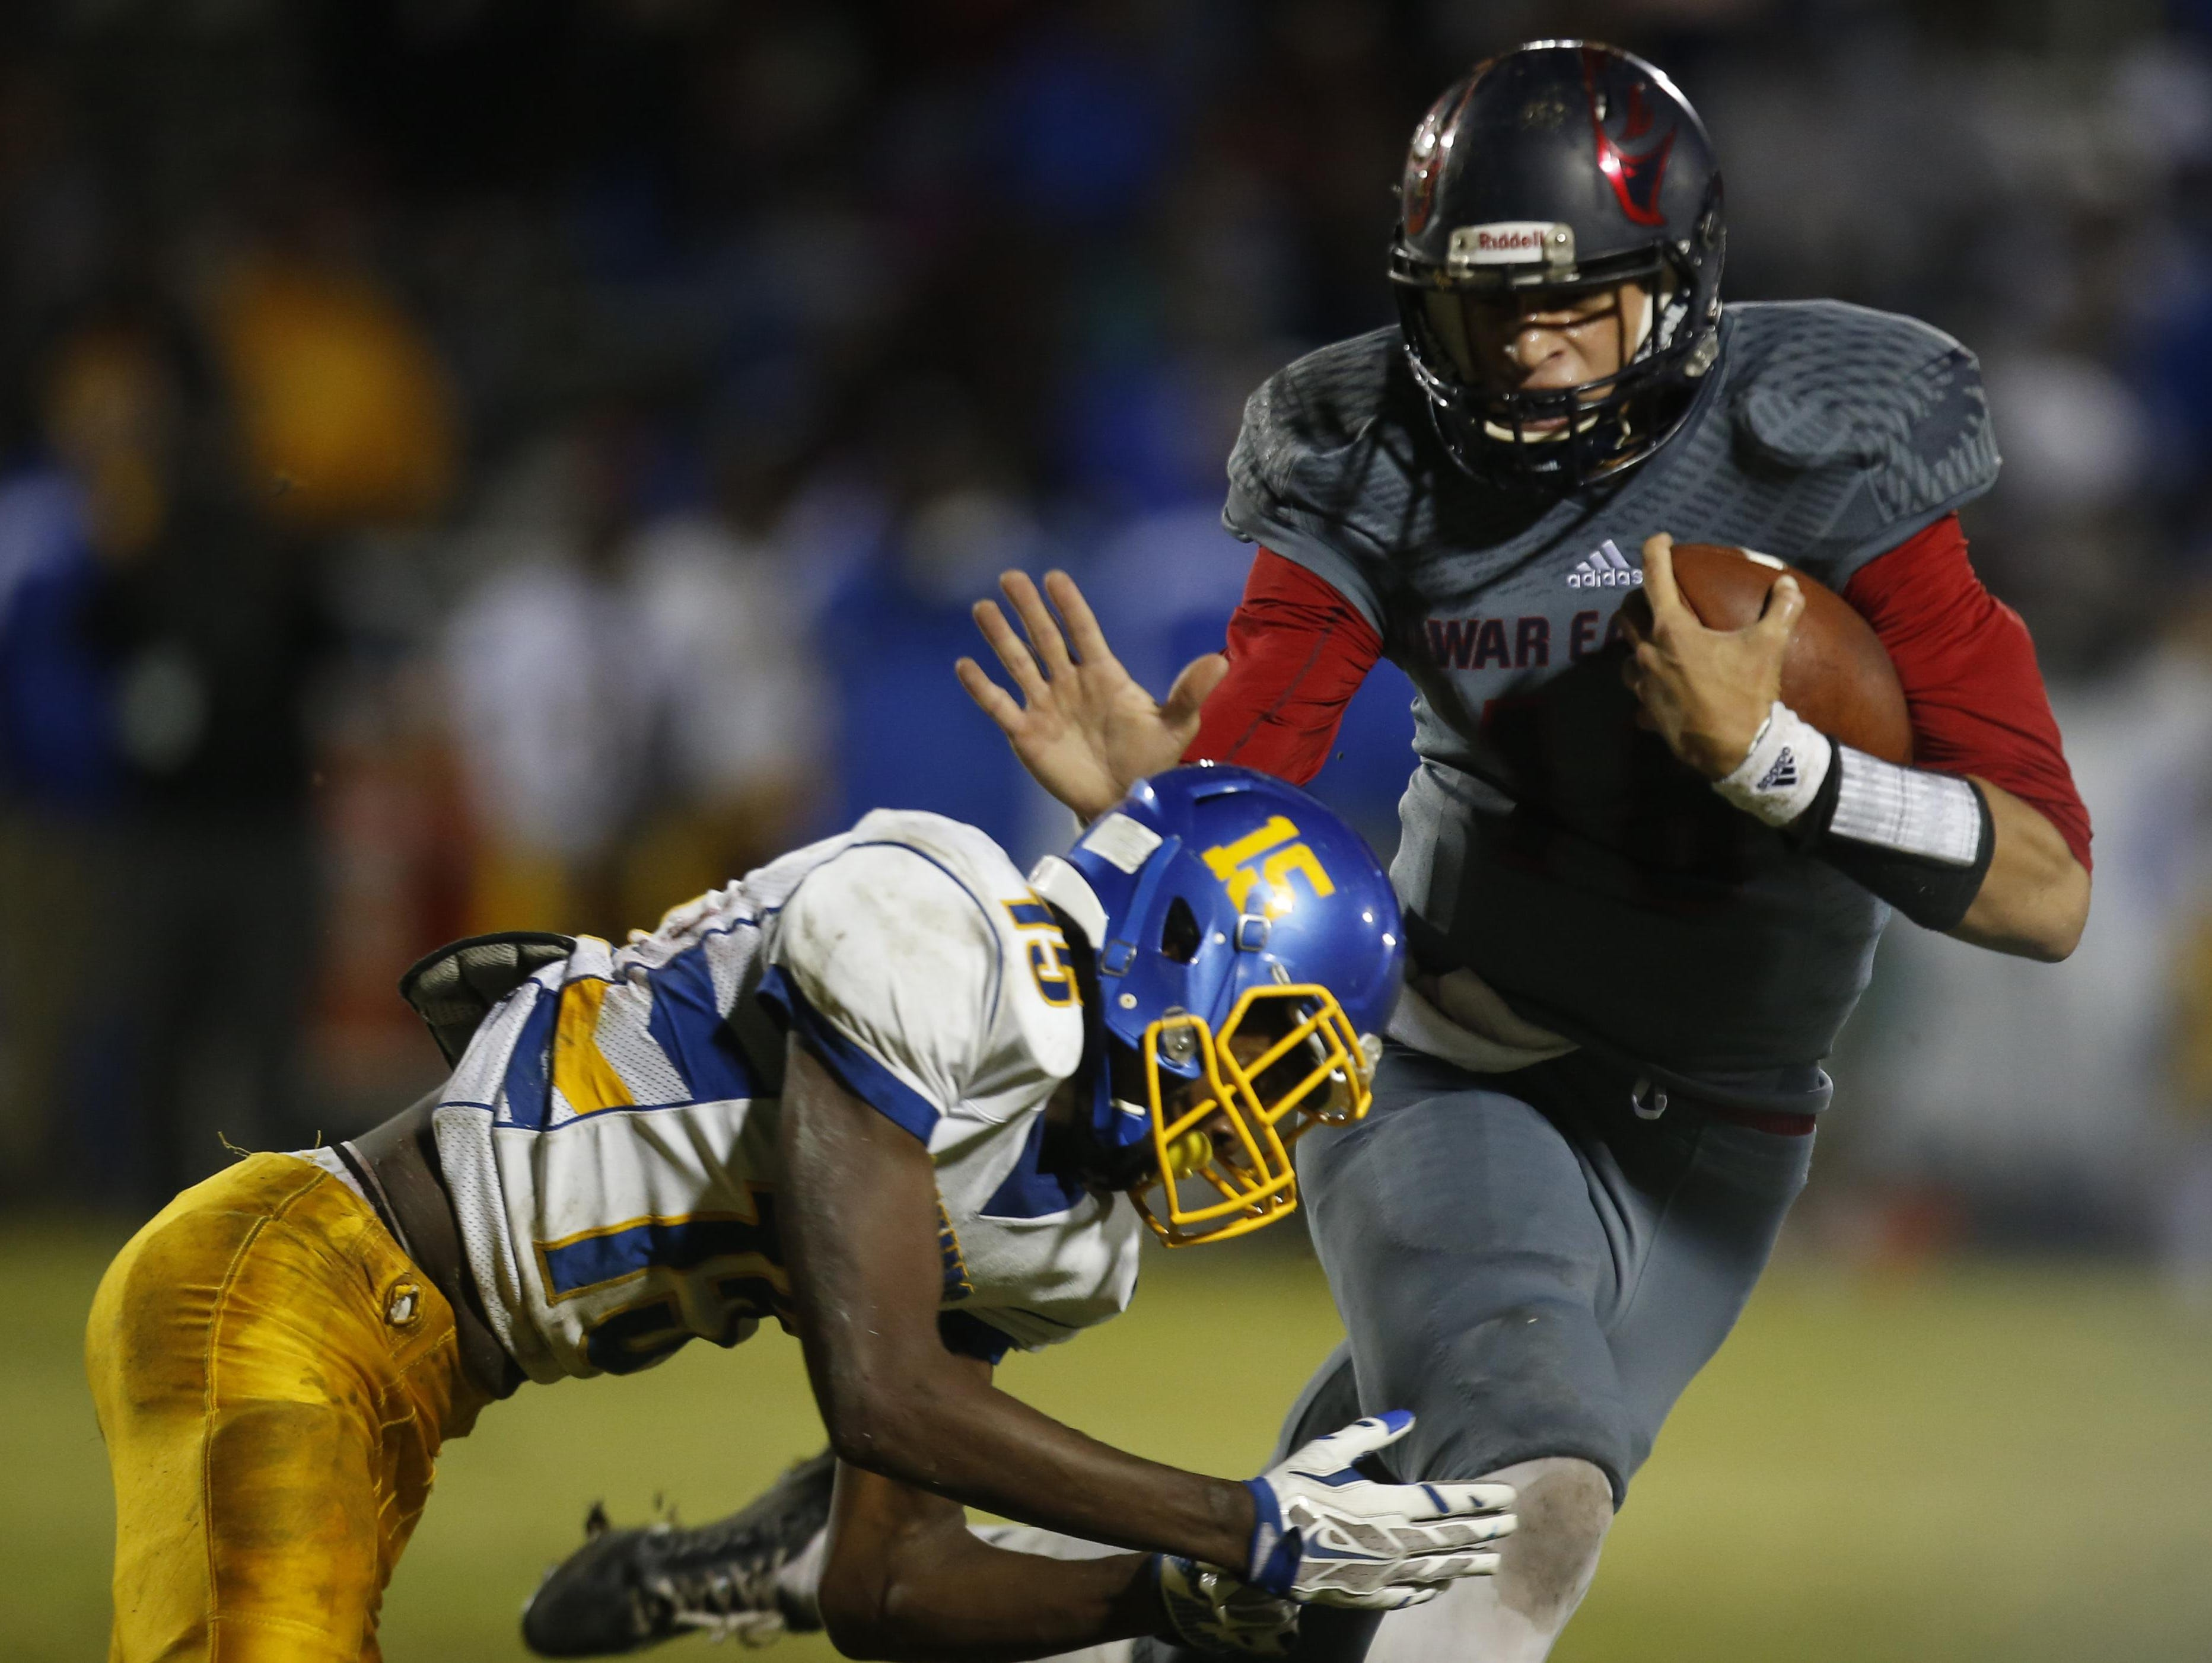 Wakulla quarterback Feleipe Franks tries to evade the tackle of Rickards' Javon Peterson during a playoff game last Friday night. Franks decommitted from LSU on Monday, opening up his recruitment by others, including Florida.